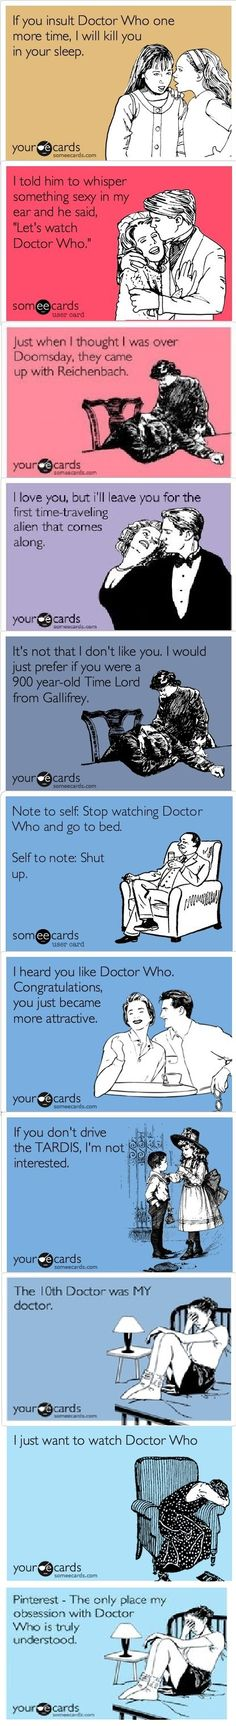 Doctor Who e-cards